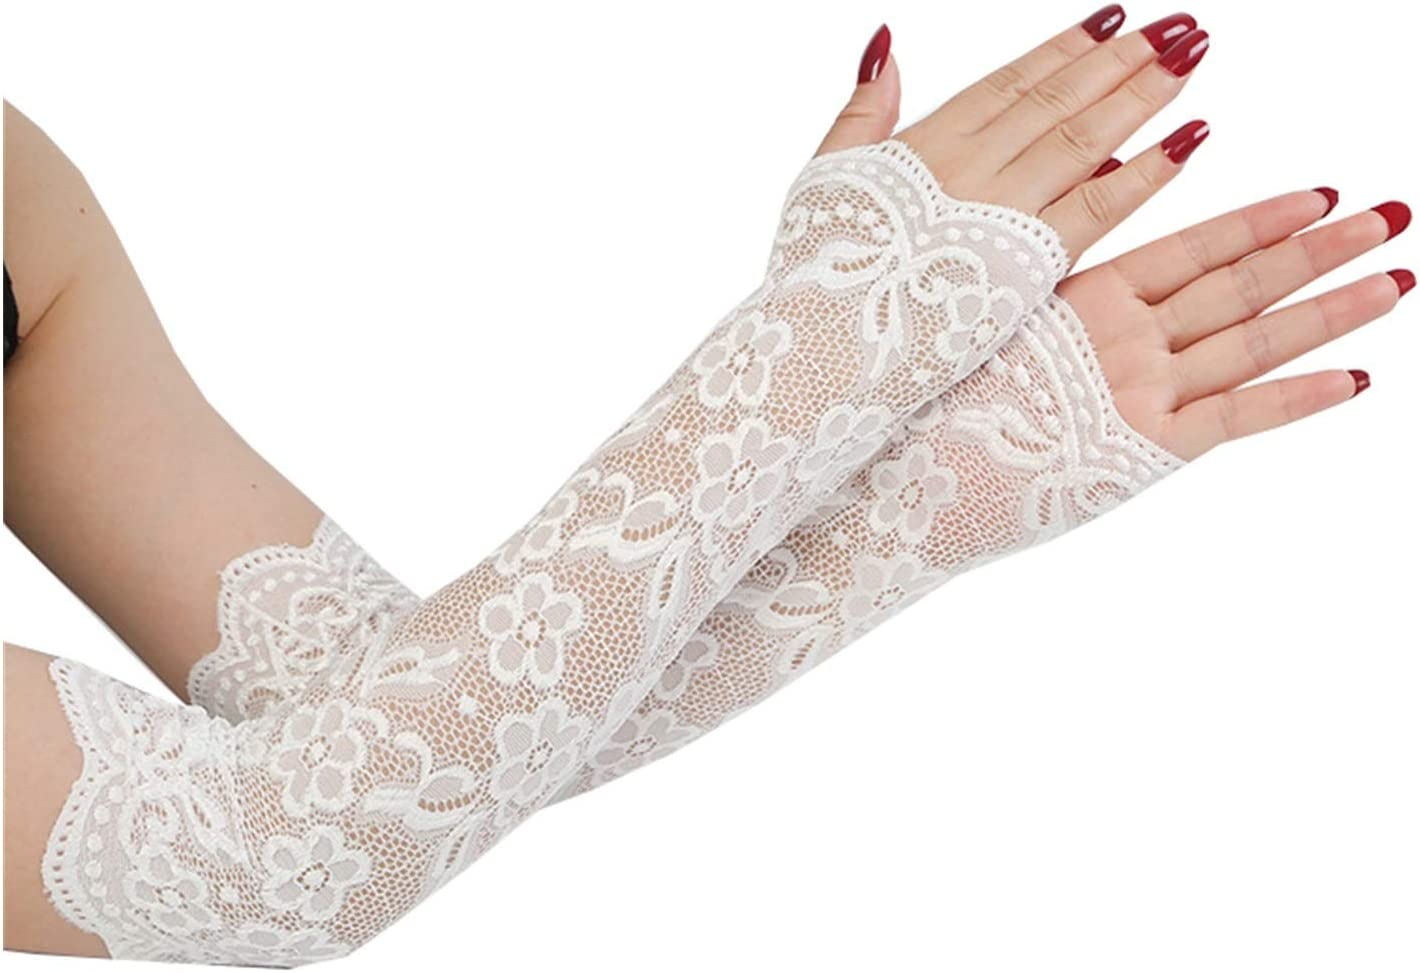 YSJJSQZ Lace Gloves Summer Women Glove Arm Clearance Lowest price challenge SALE Limited time Sunproof Driving Slee